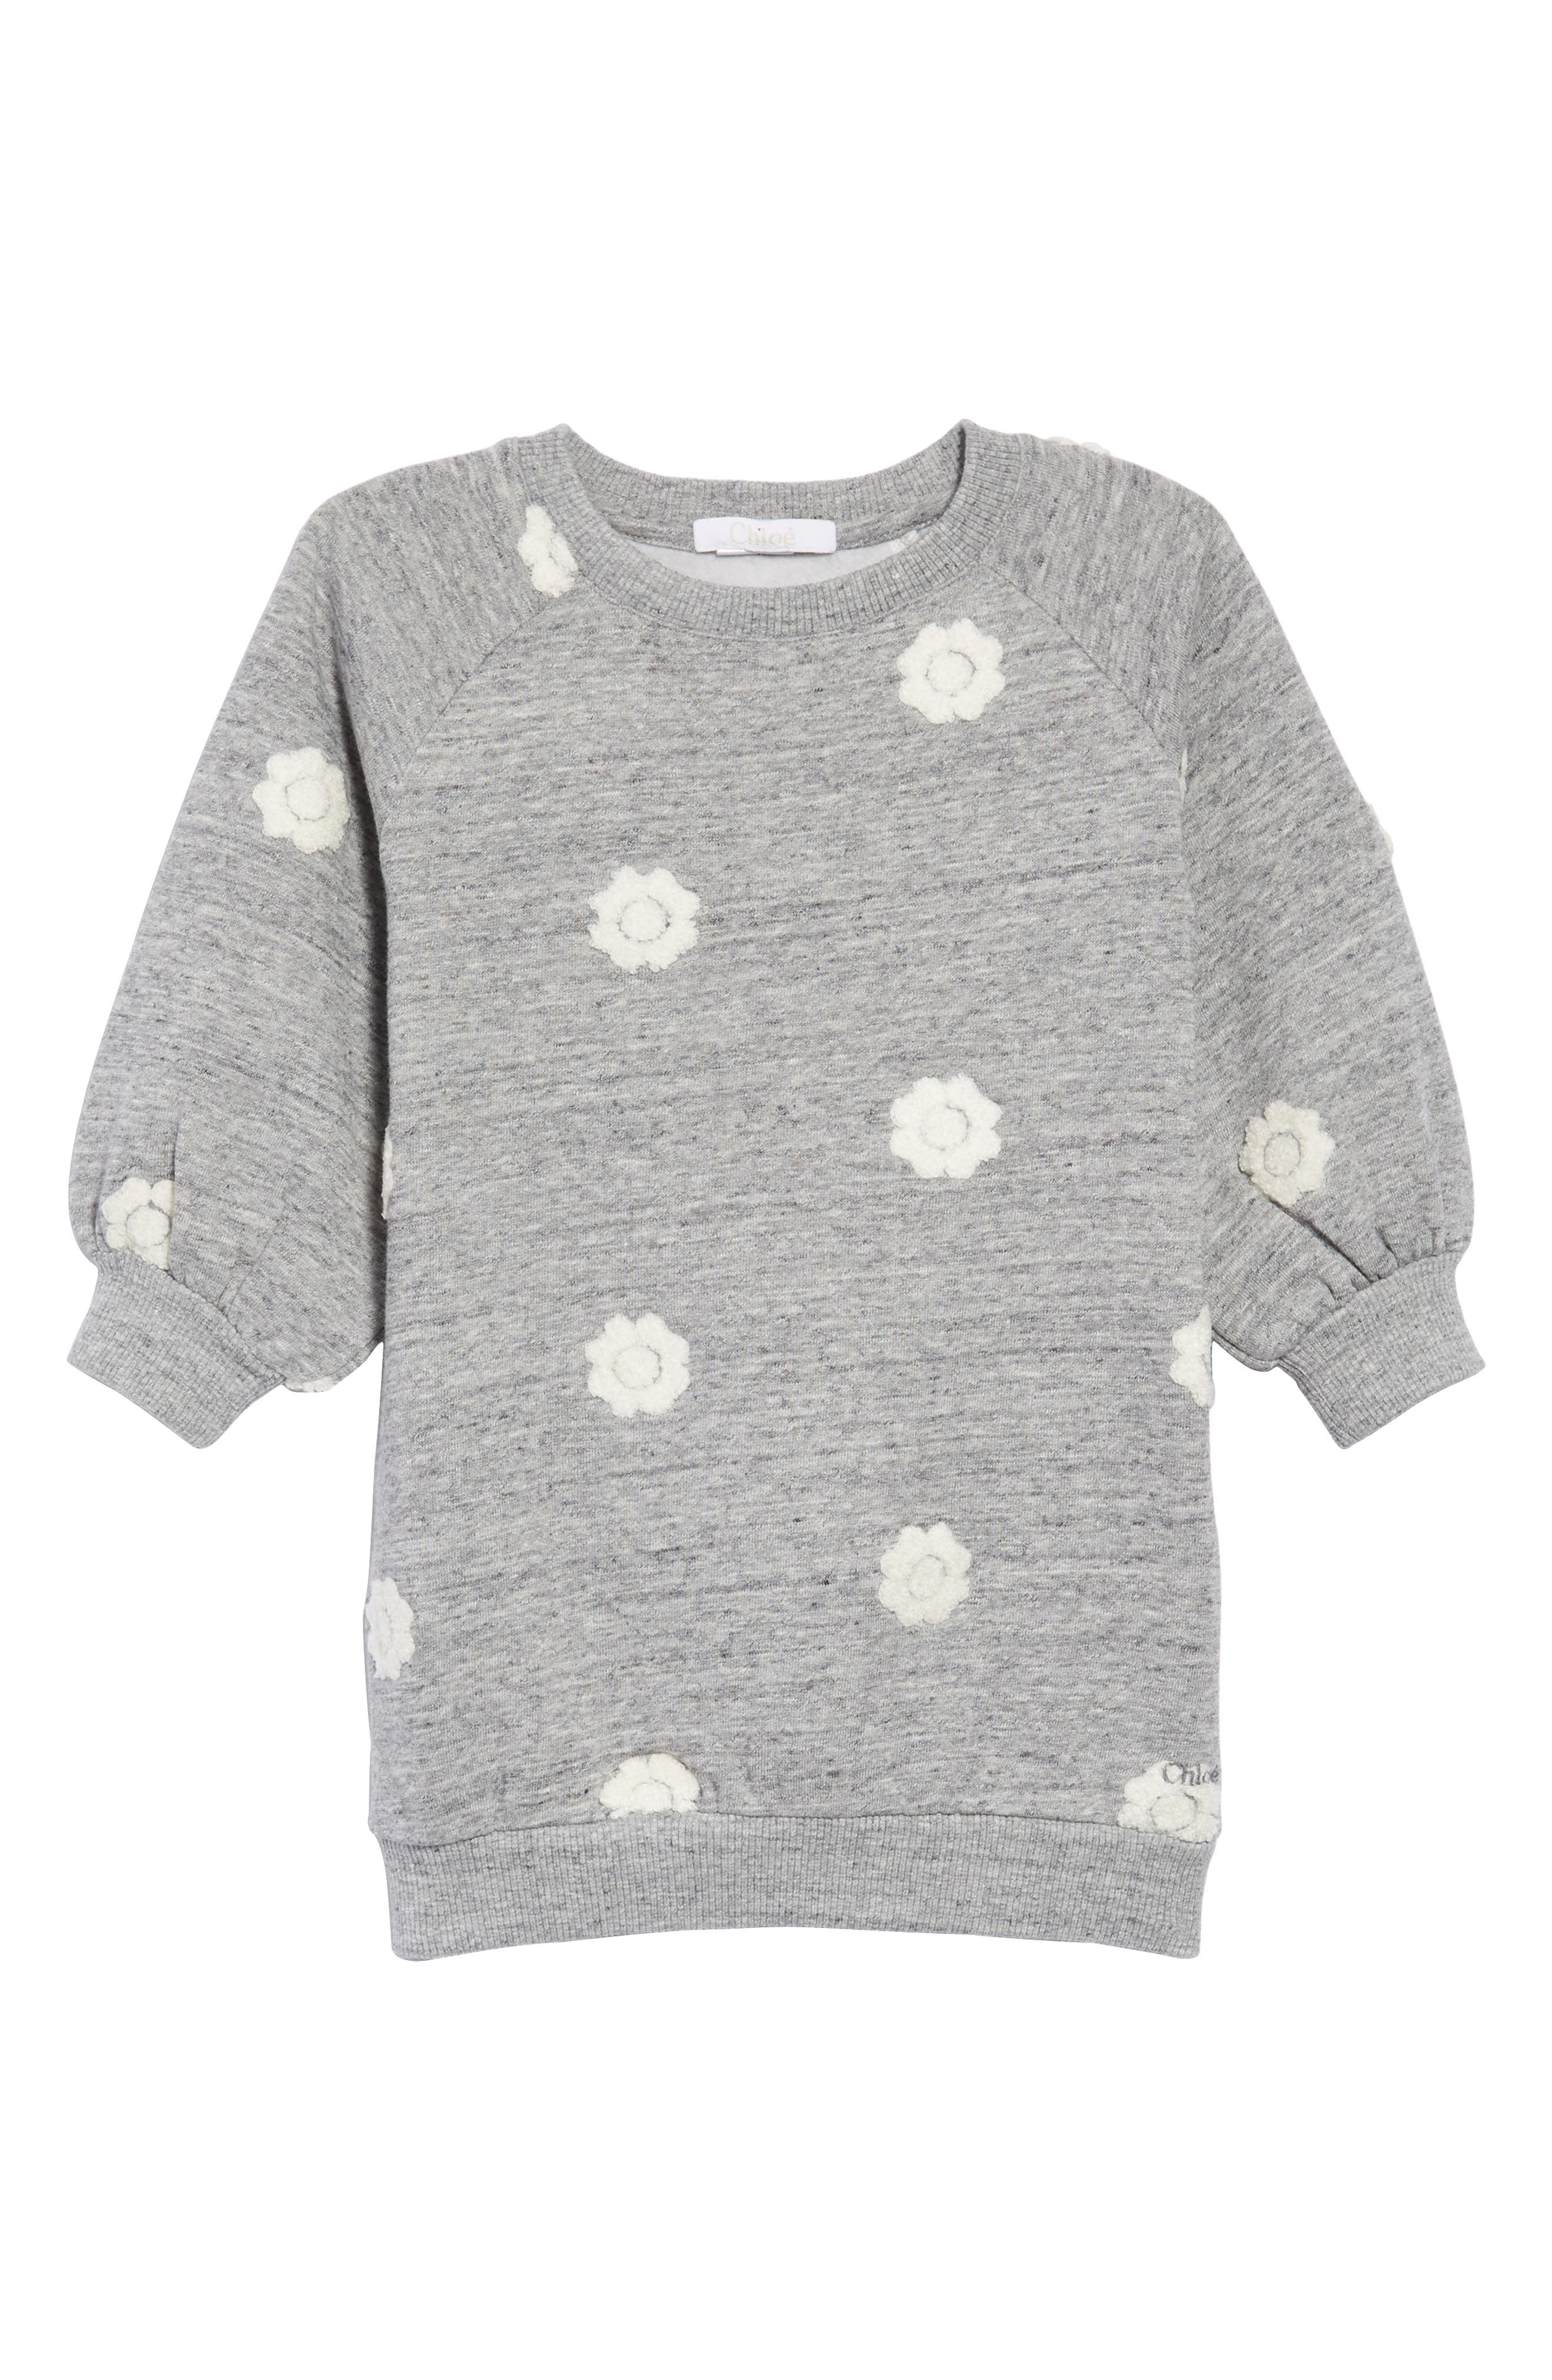 Floral Embroidered Sweatshirt Dress,                             Main thumbnail 1, color,                             GRIS CHINE